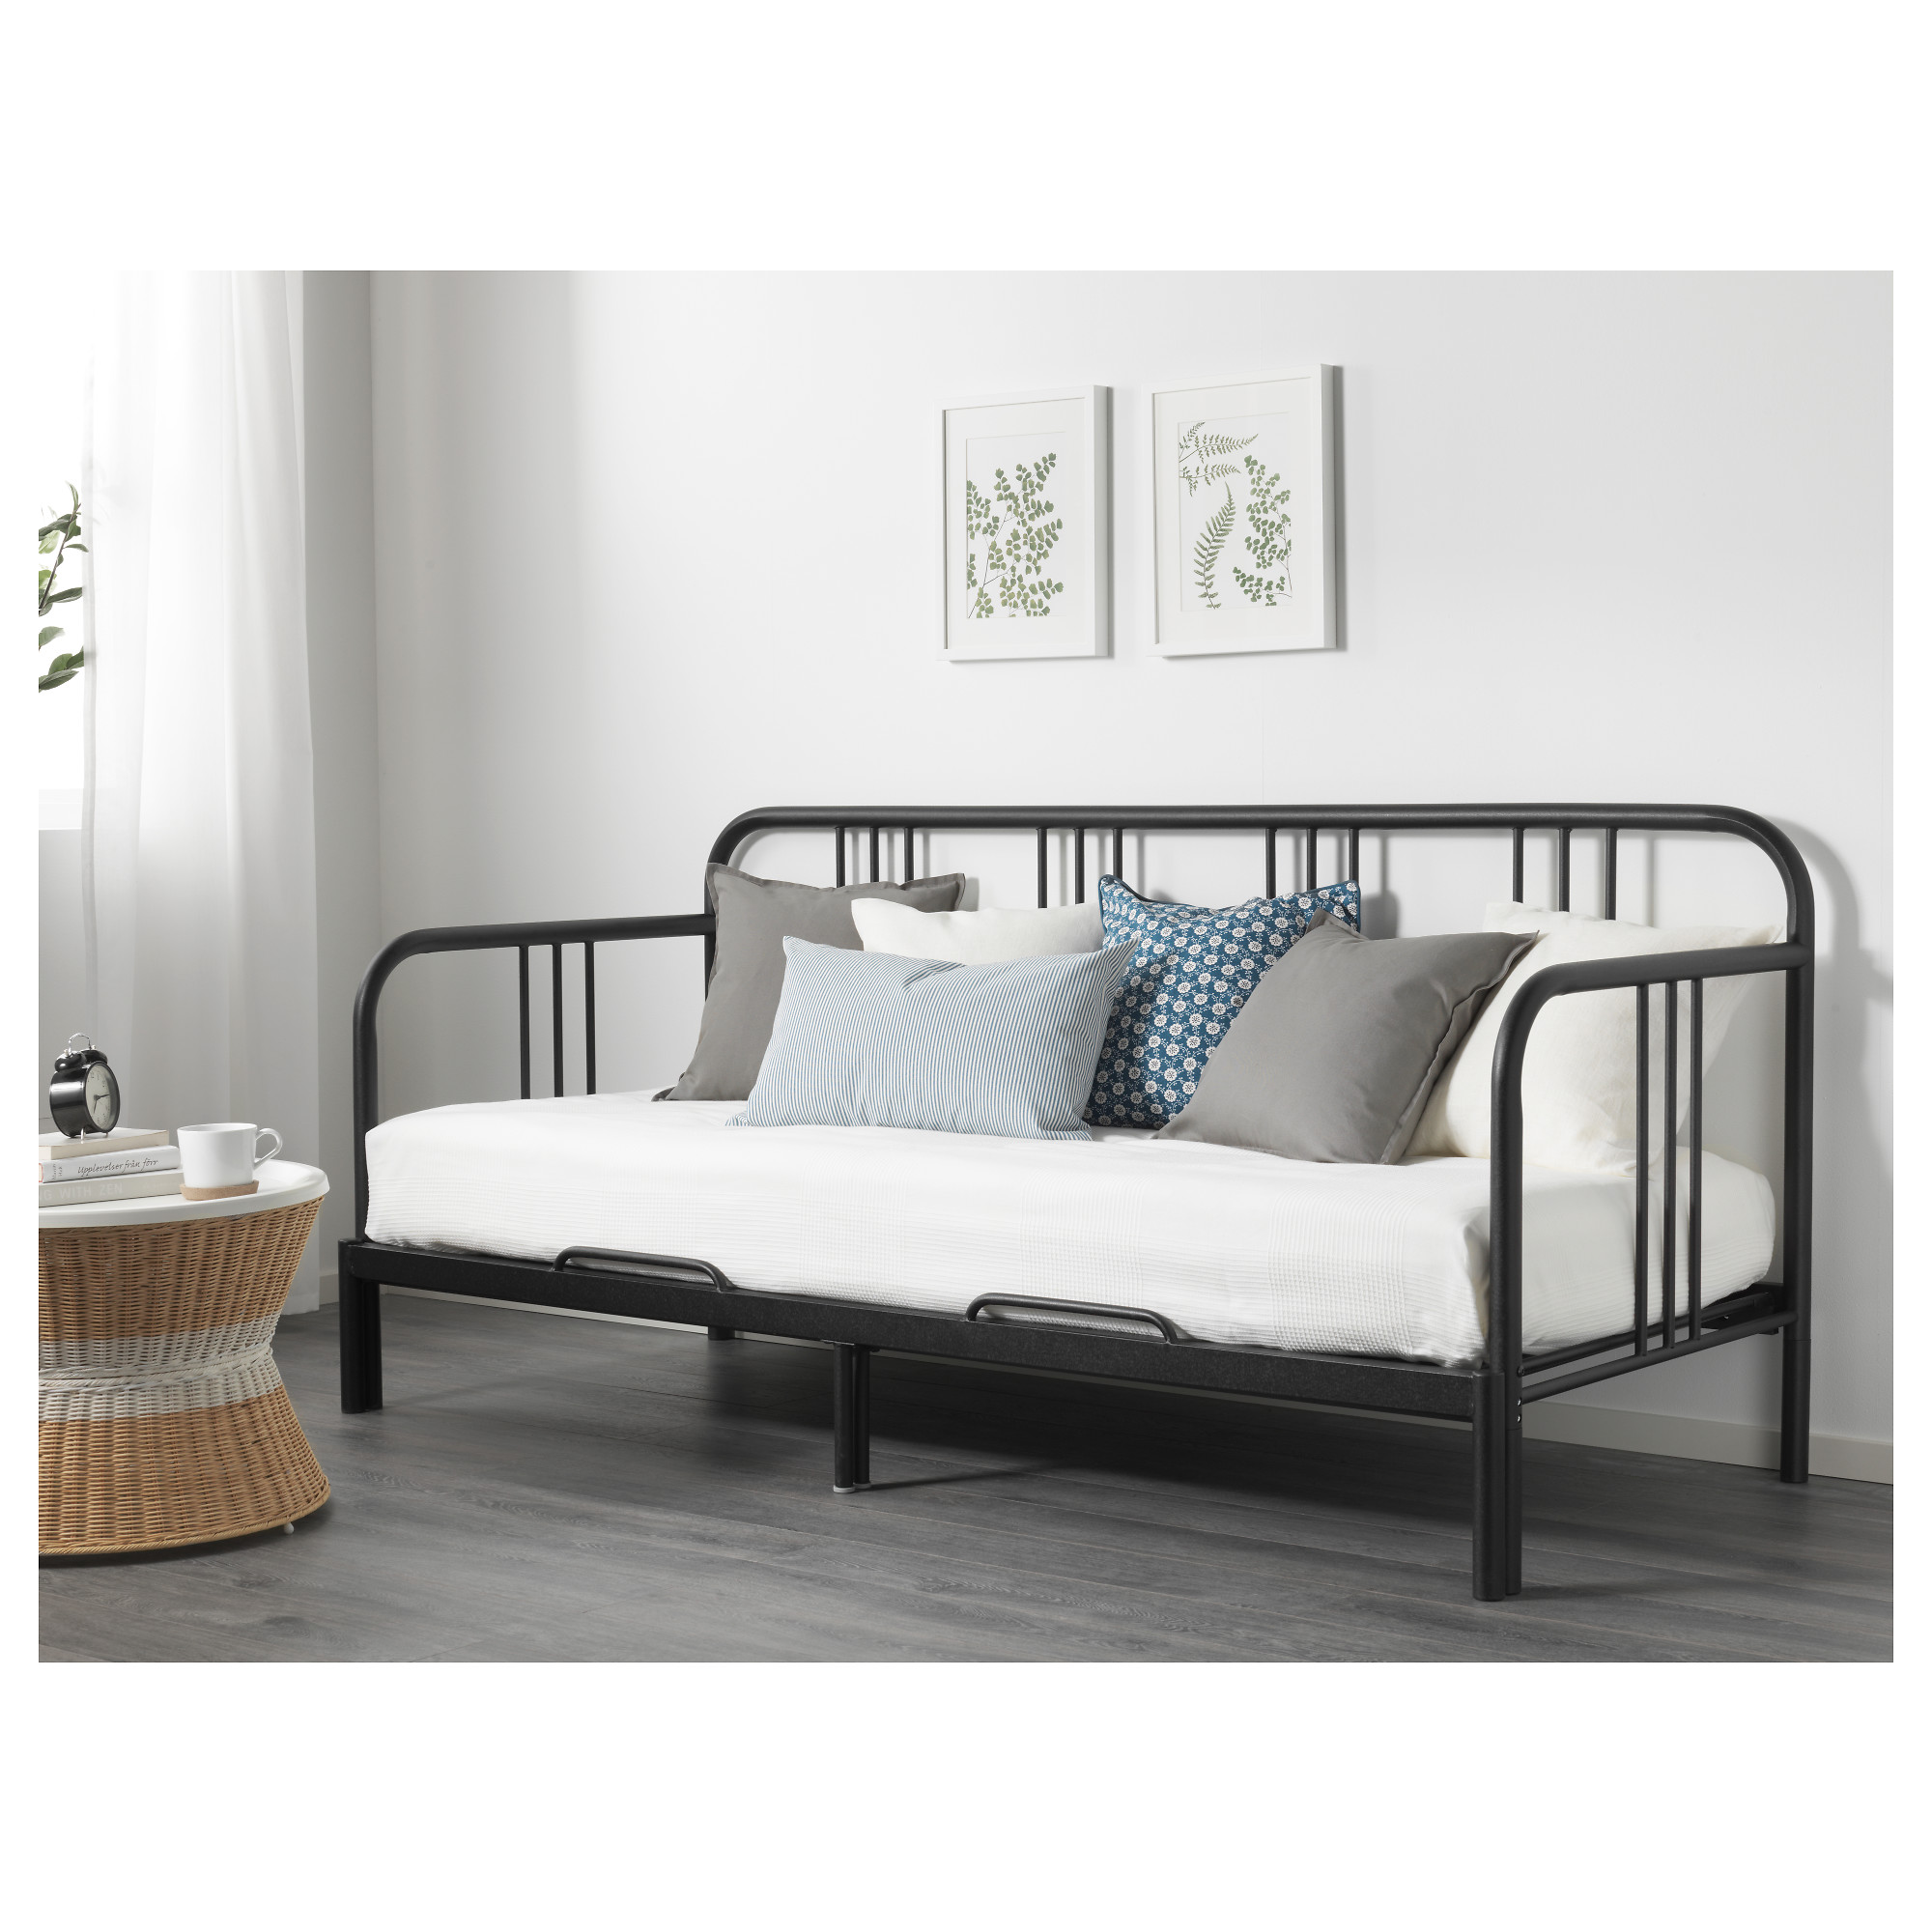 Daybed sofa couch - Daybed Sofa Couch 35